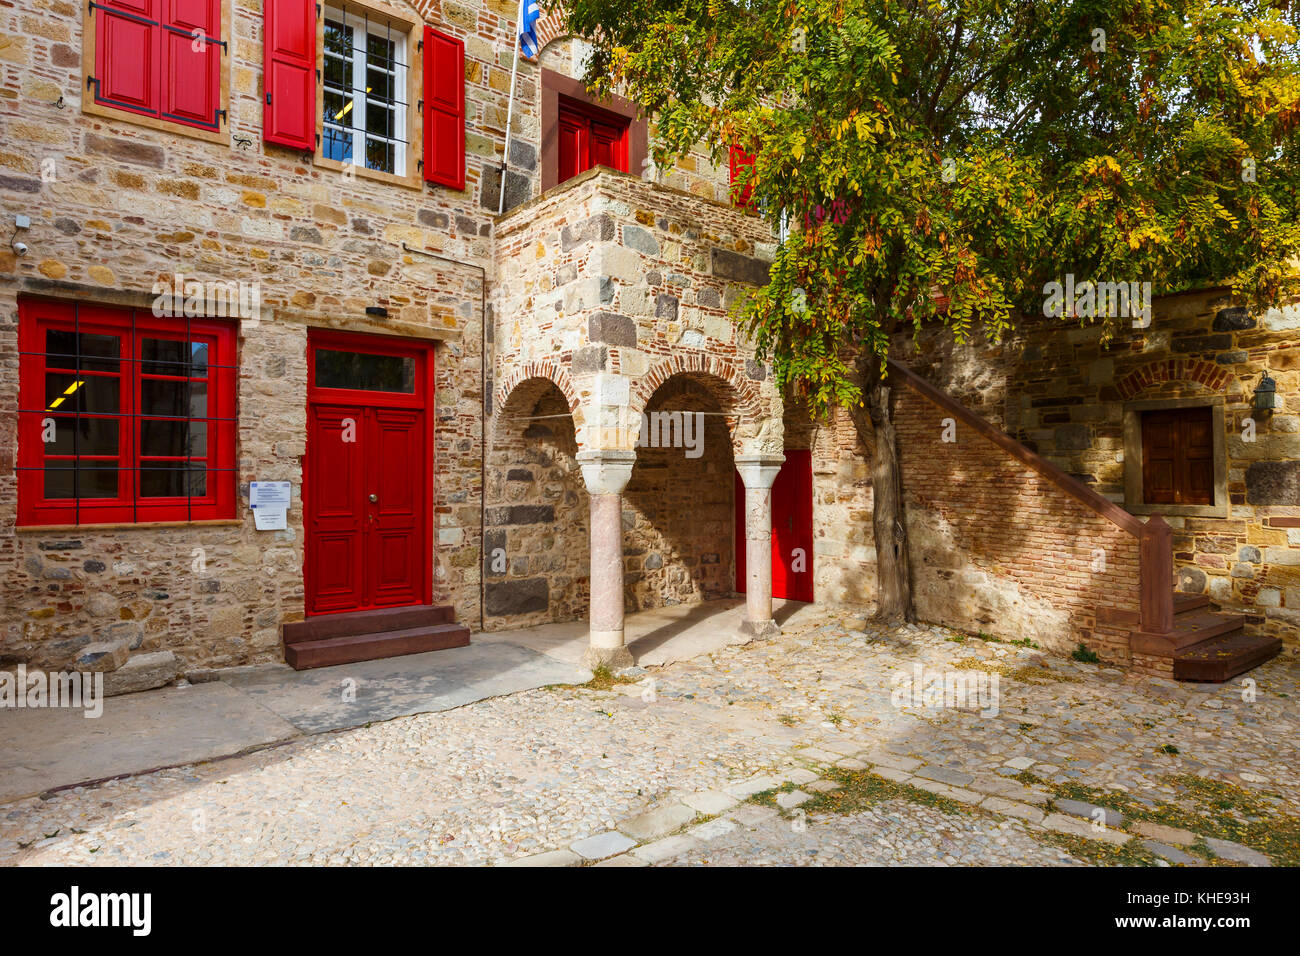 Architecture in the old town of Chios with red doors and windows. - Stock Image